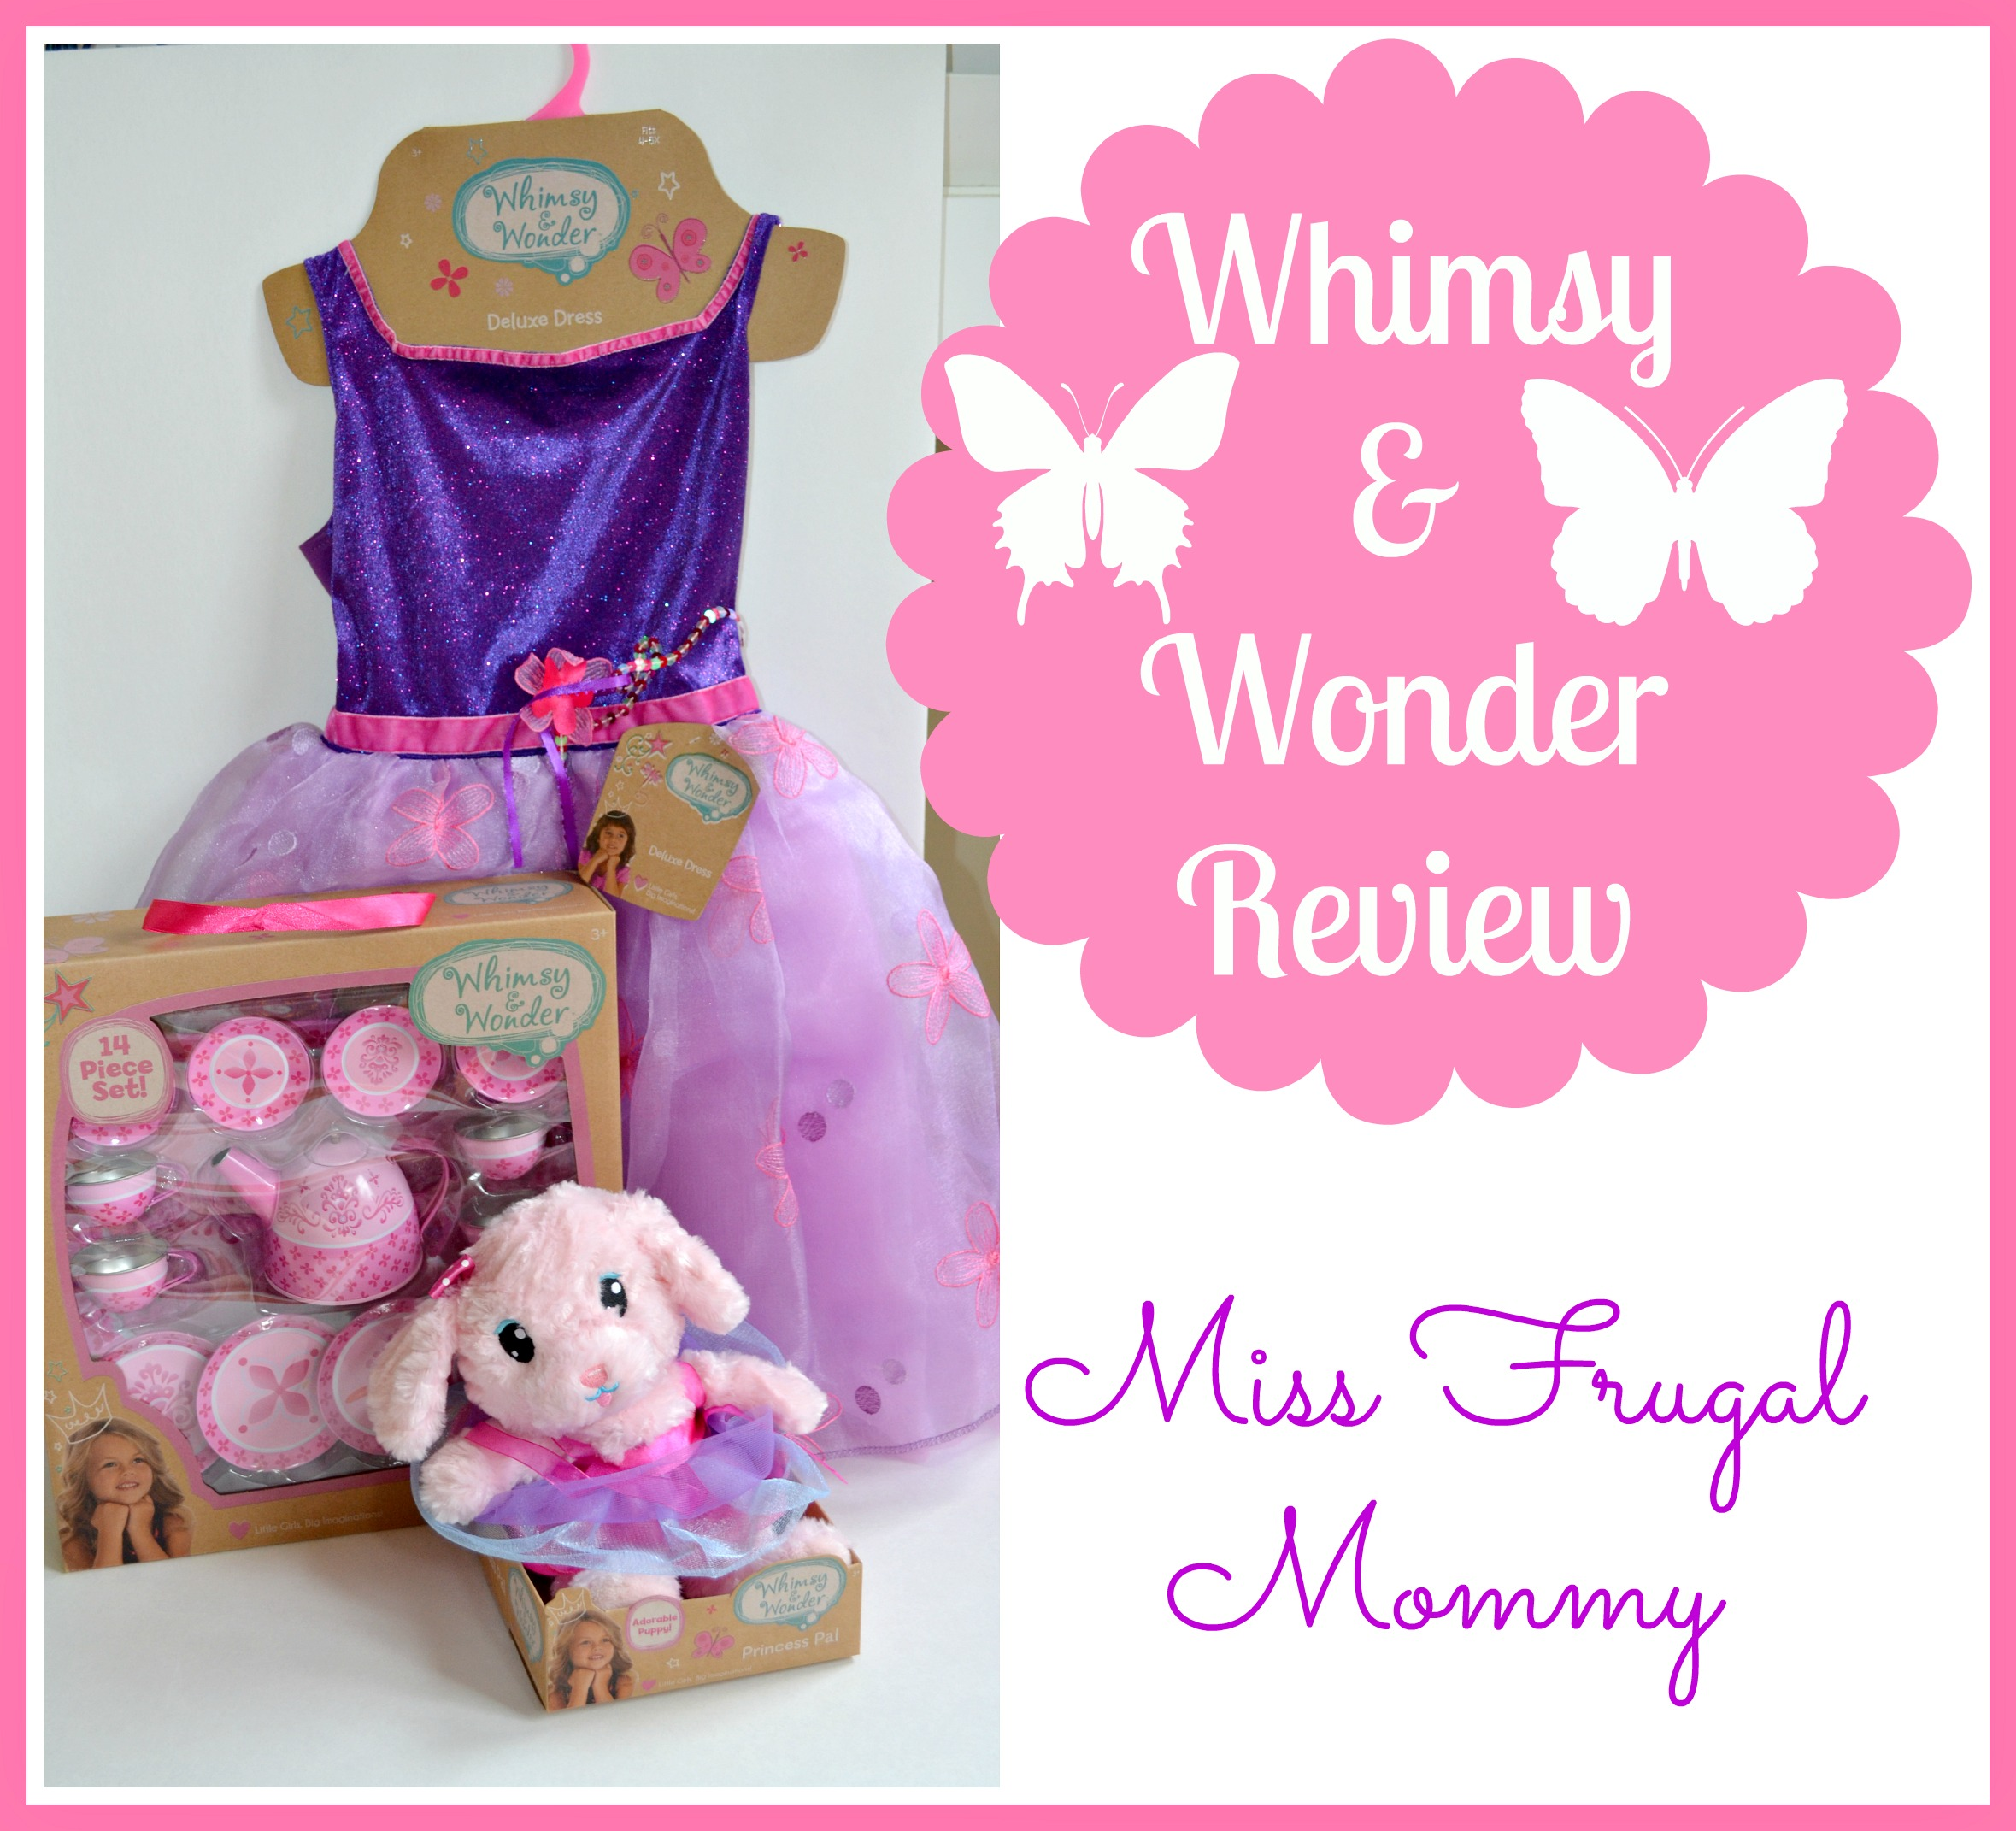 whimsy1